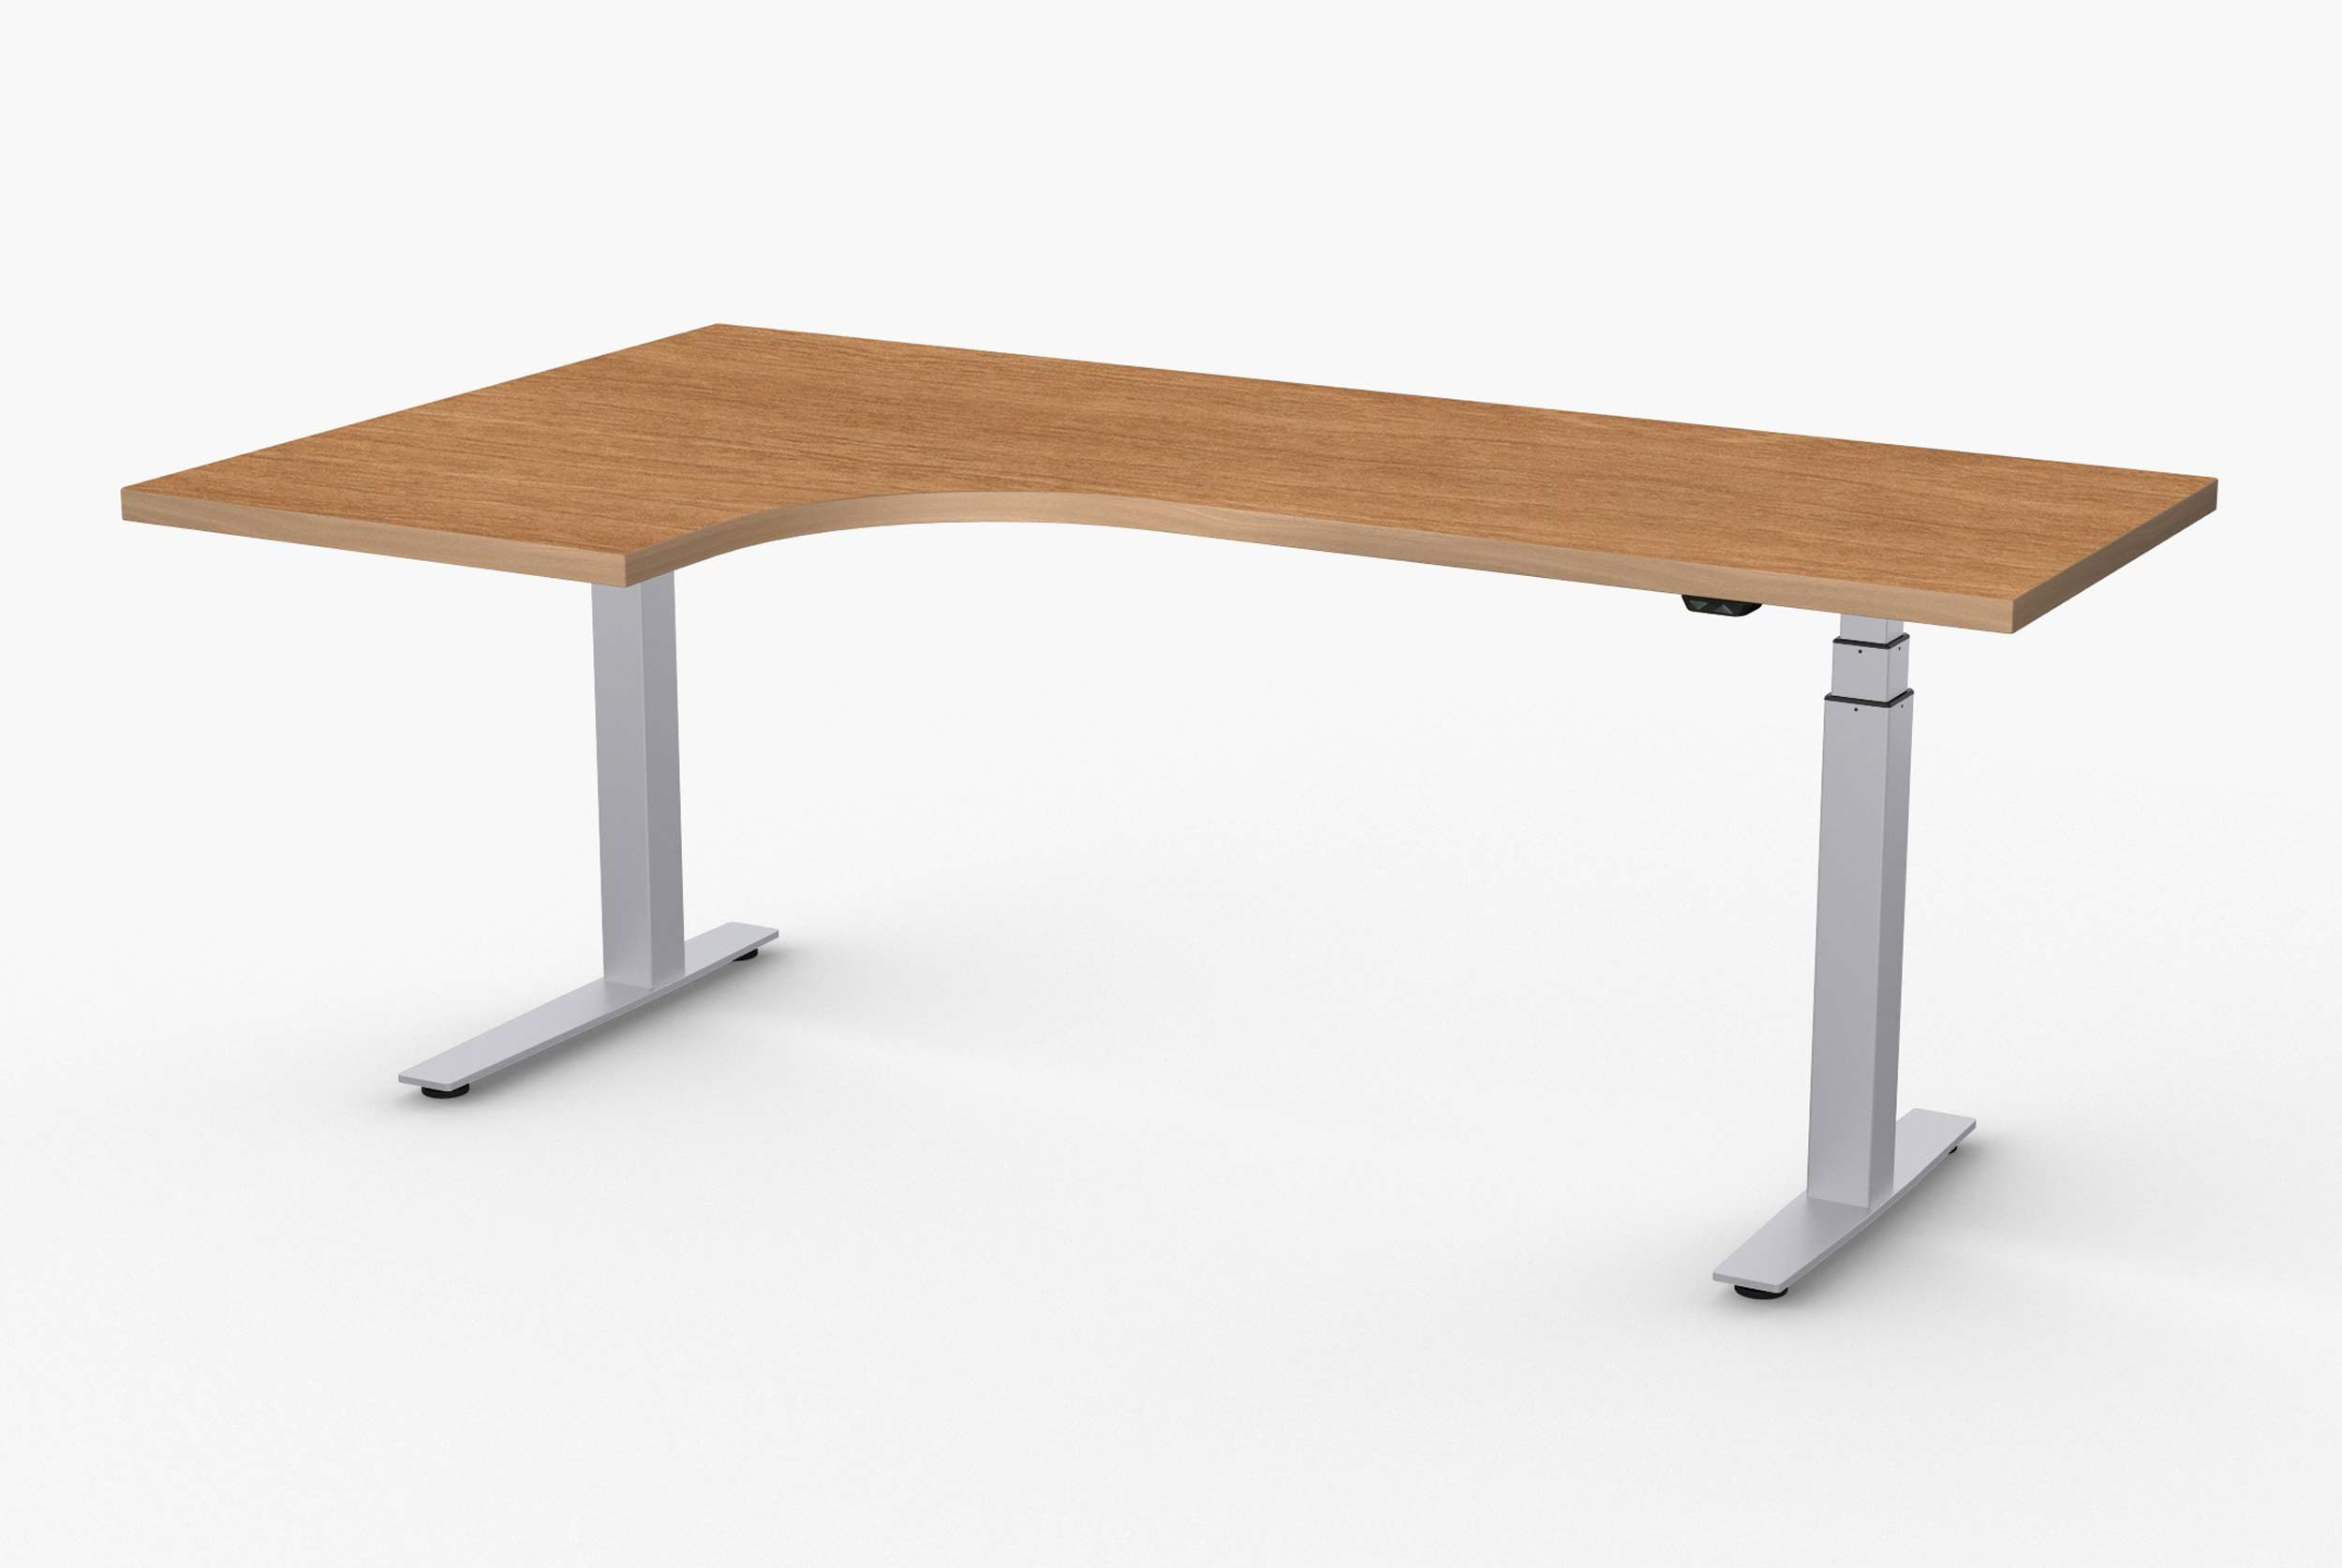 L Shaped Ergonomic Computer Desk Adjustable Height Desks